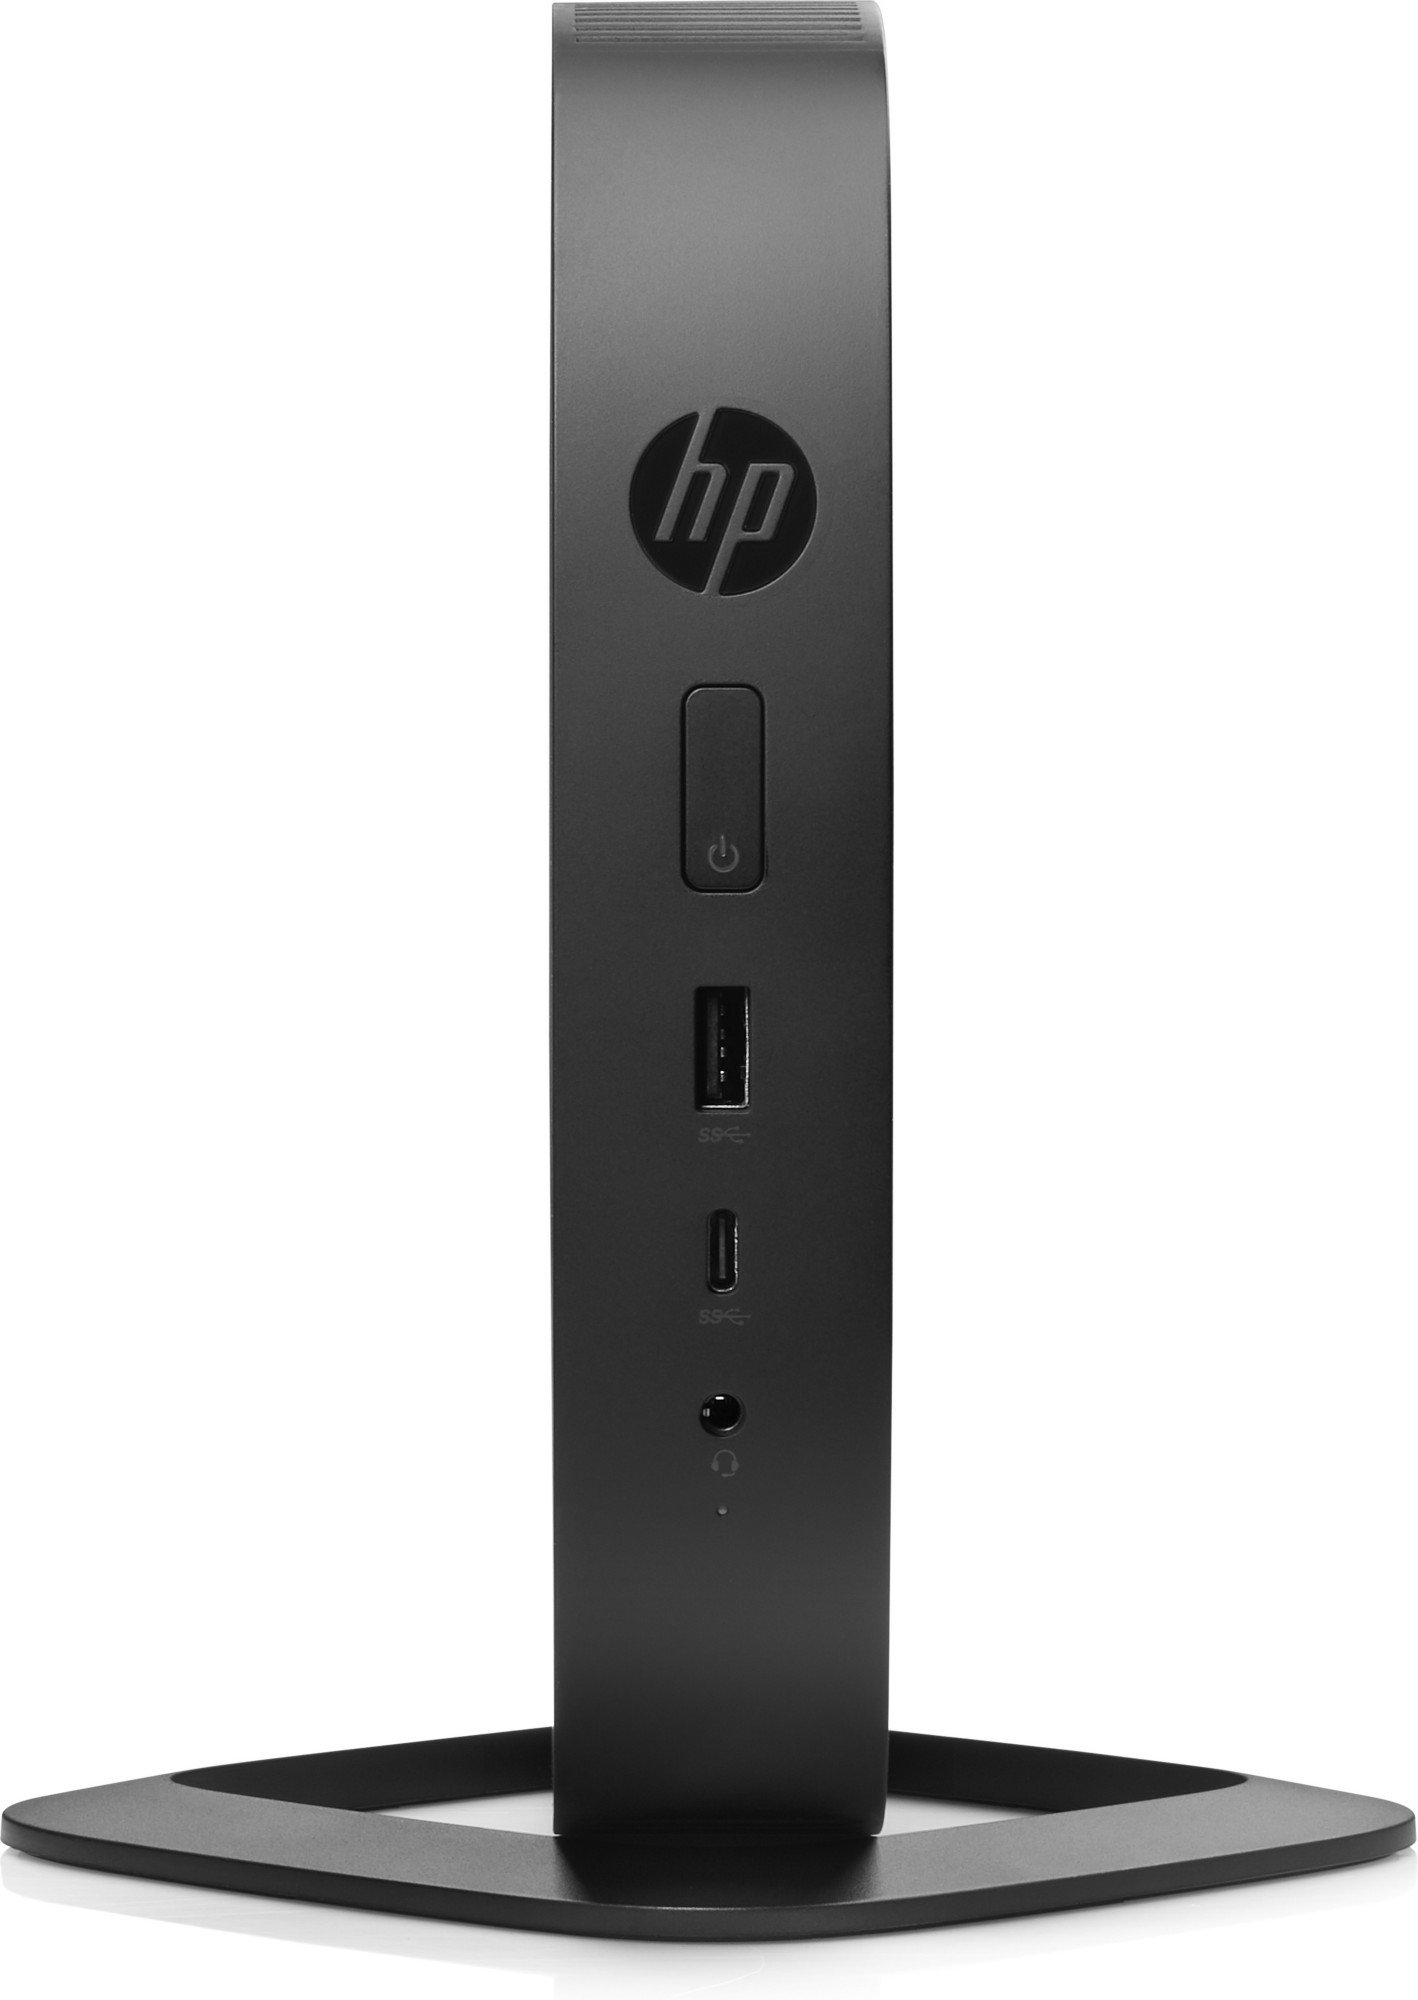 HP 2DH78AT#ABU T530 1.5GHZ GX-215JJ 960G BLACK